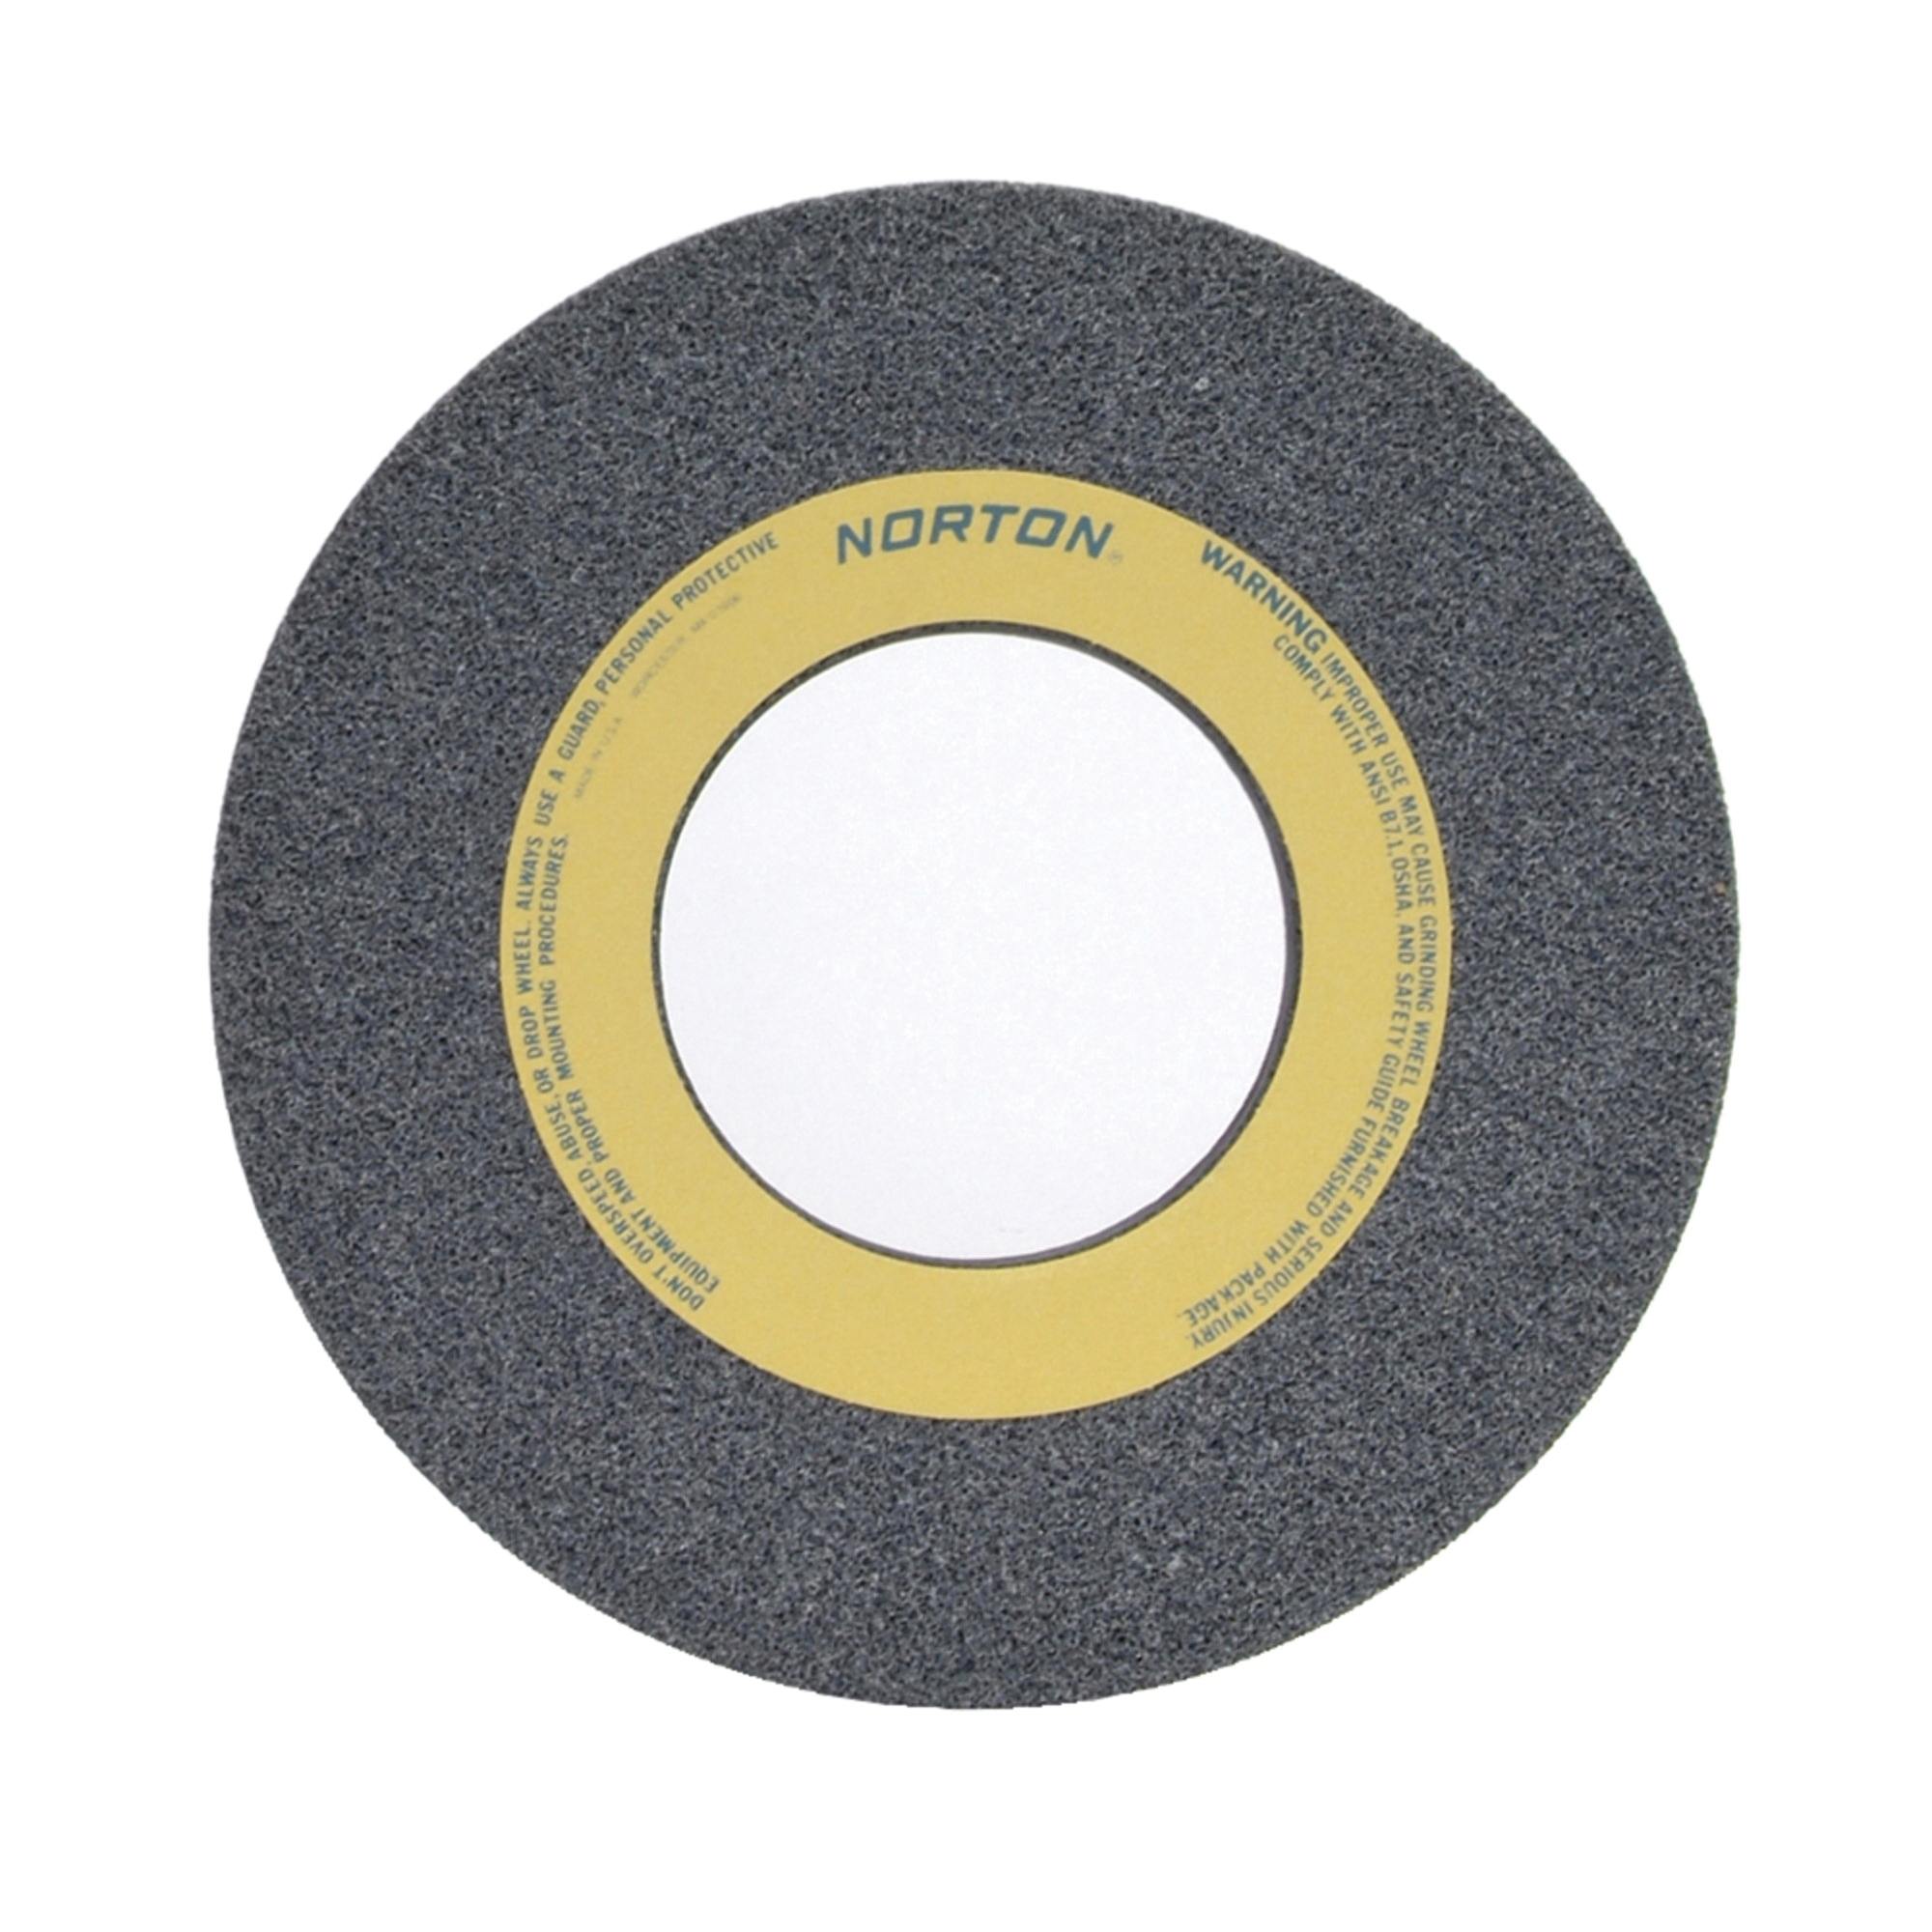 Norton® 66253364239 32A Straight Toolroom Wheel, 14 in Dia x 1-1/2 in THK, 5 in Center Hole, 60 Grit, Aluminum Oxide Abrasive